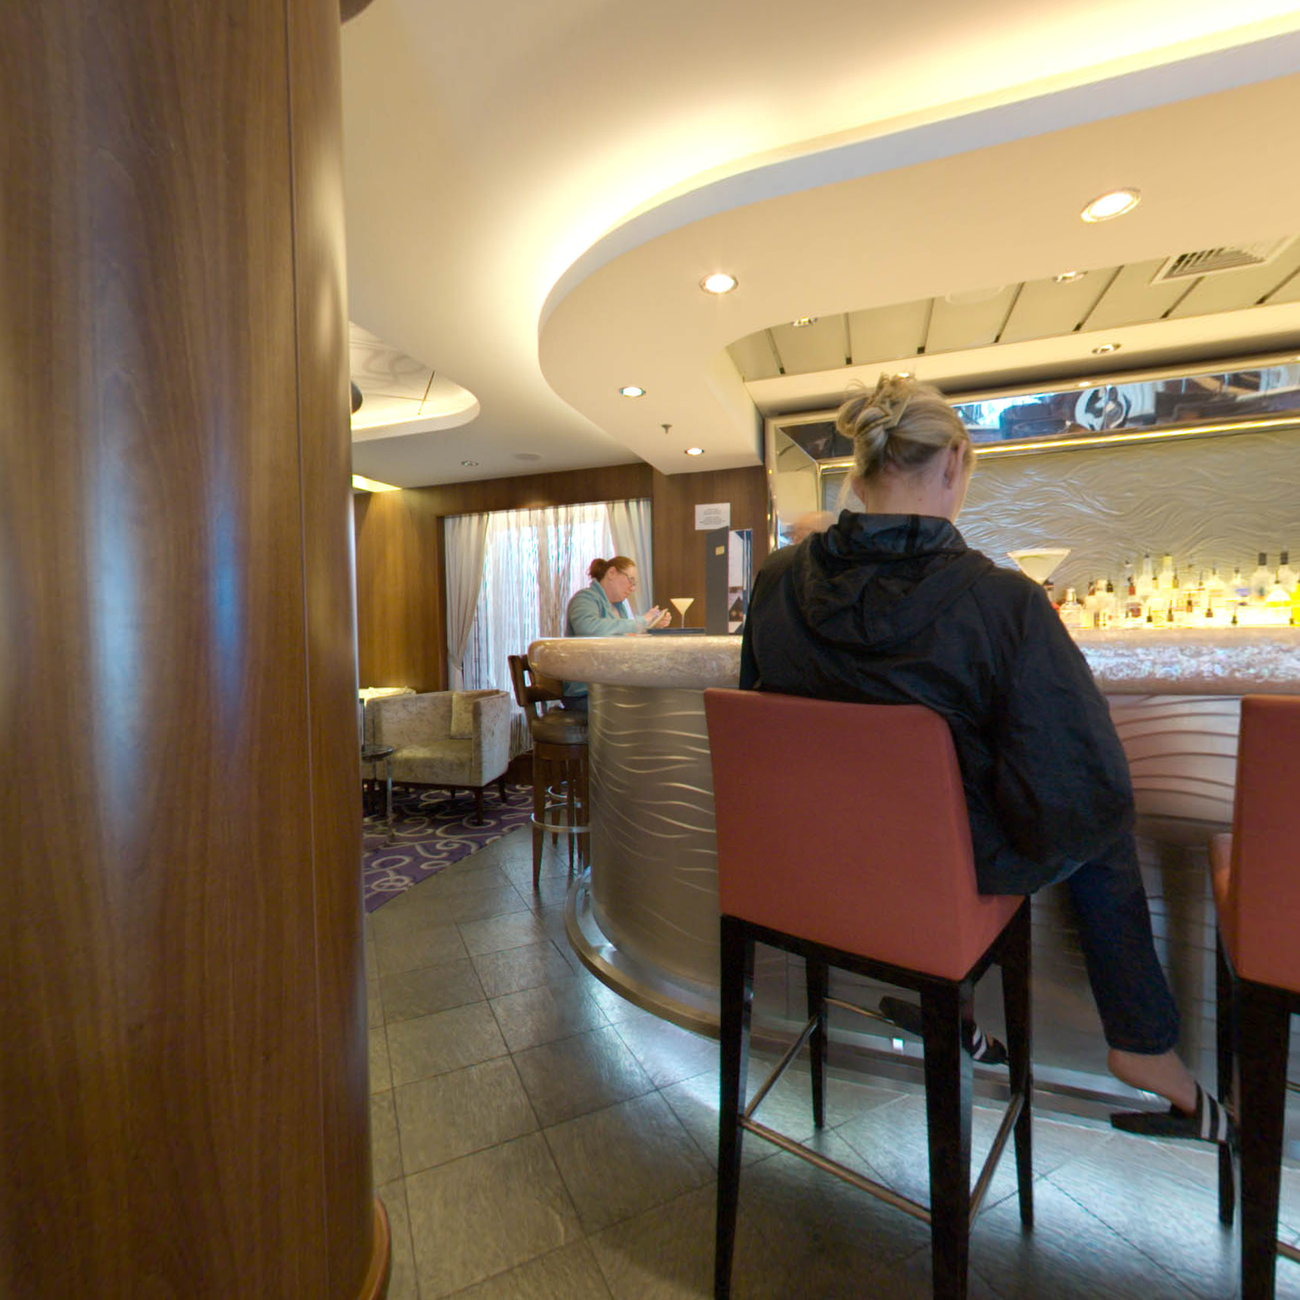 Panorama of Shakers Martini Bar on Norwegian Epic